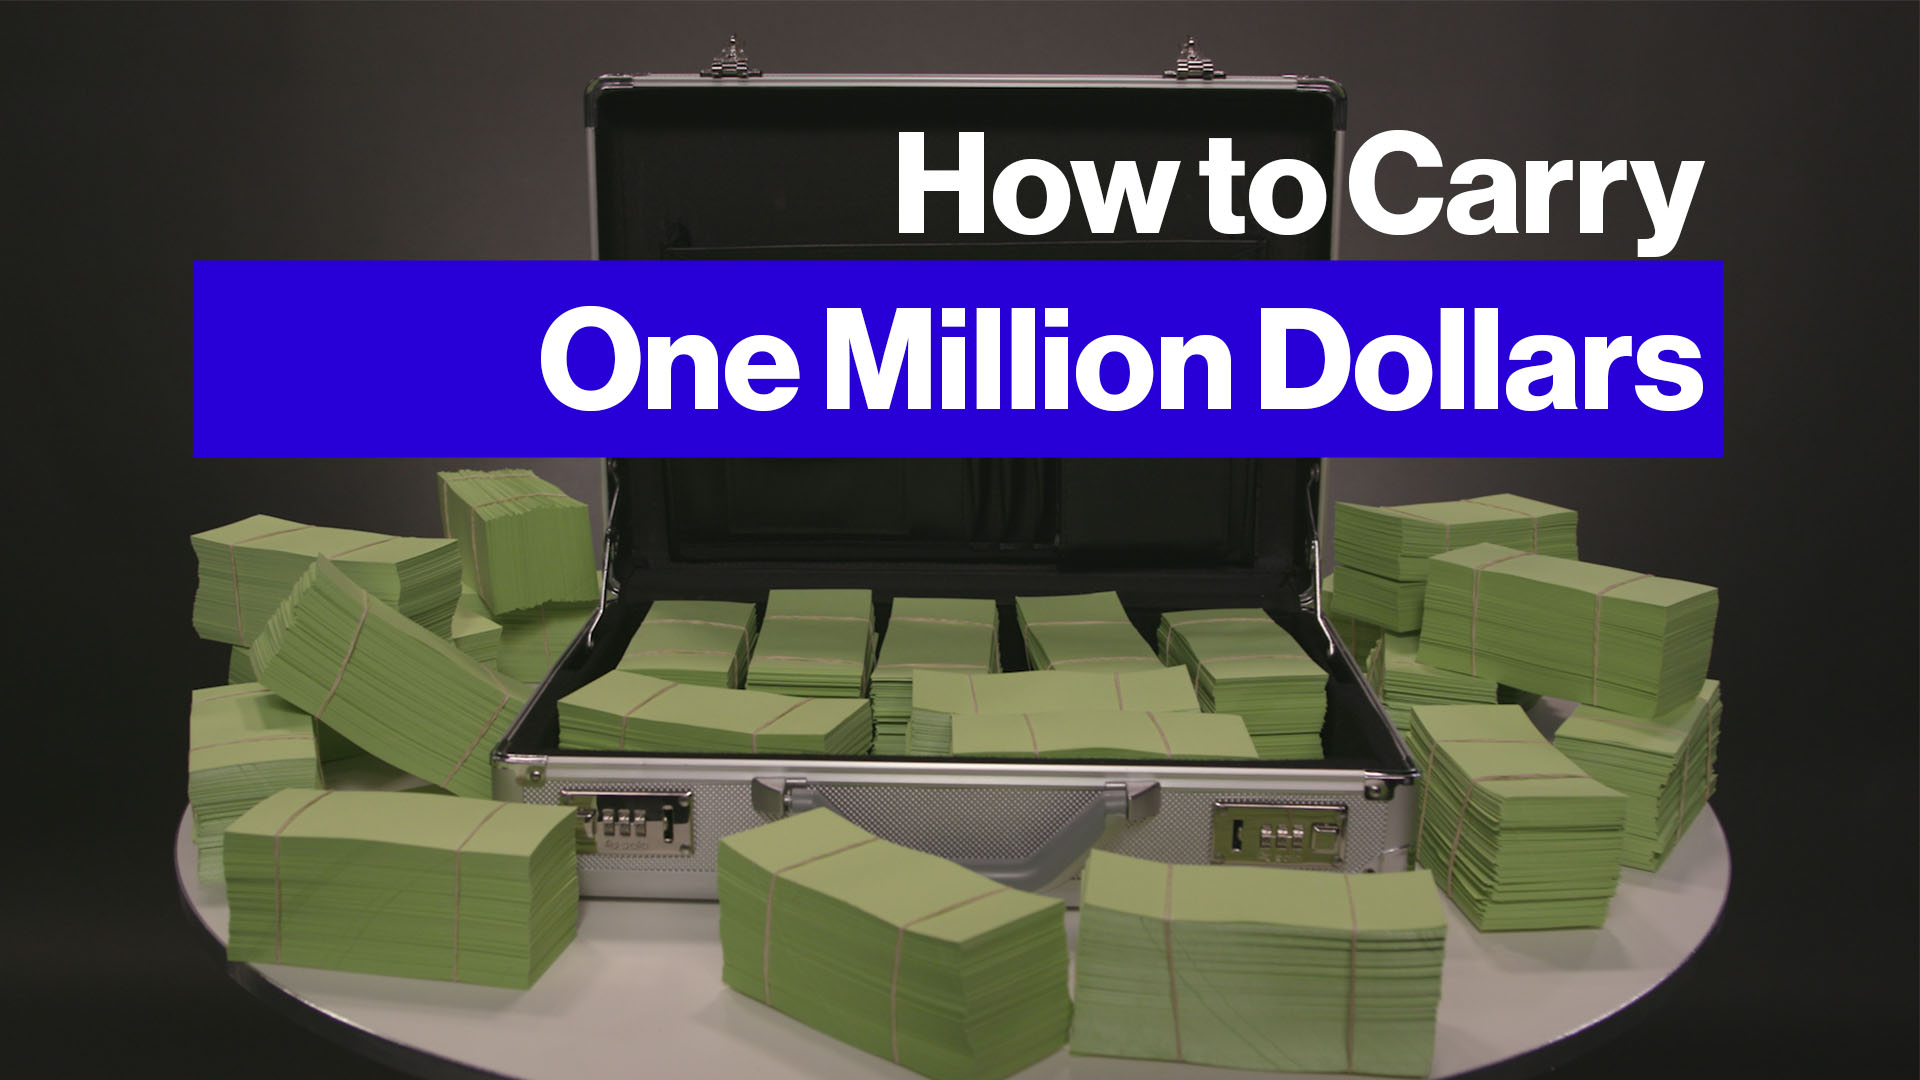 How to Carry $1 Million in Cash - Bloomberg